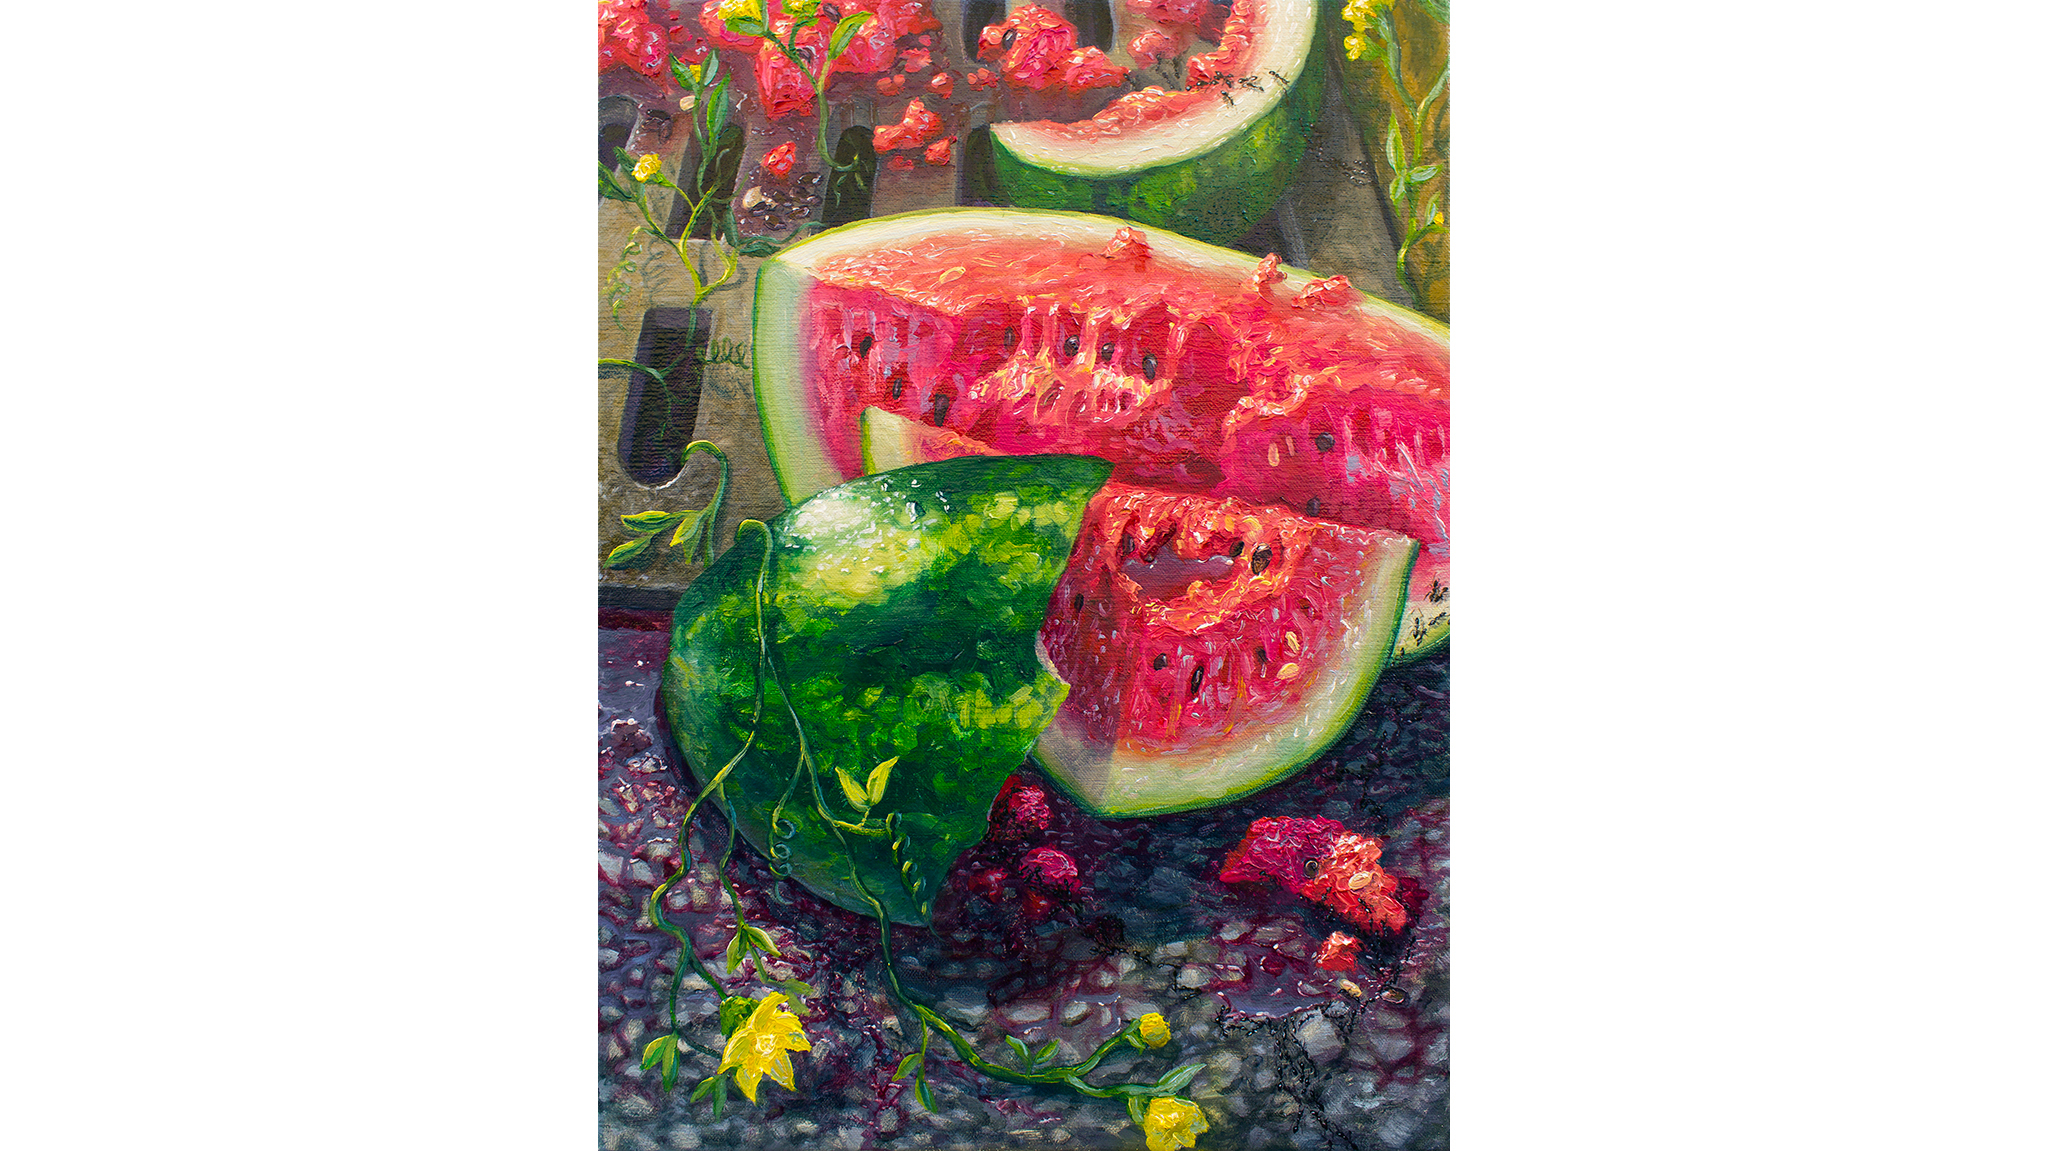 Watermelon growing in NYC streets. Oil on canvas, 14 x 11 inches